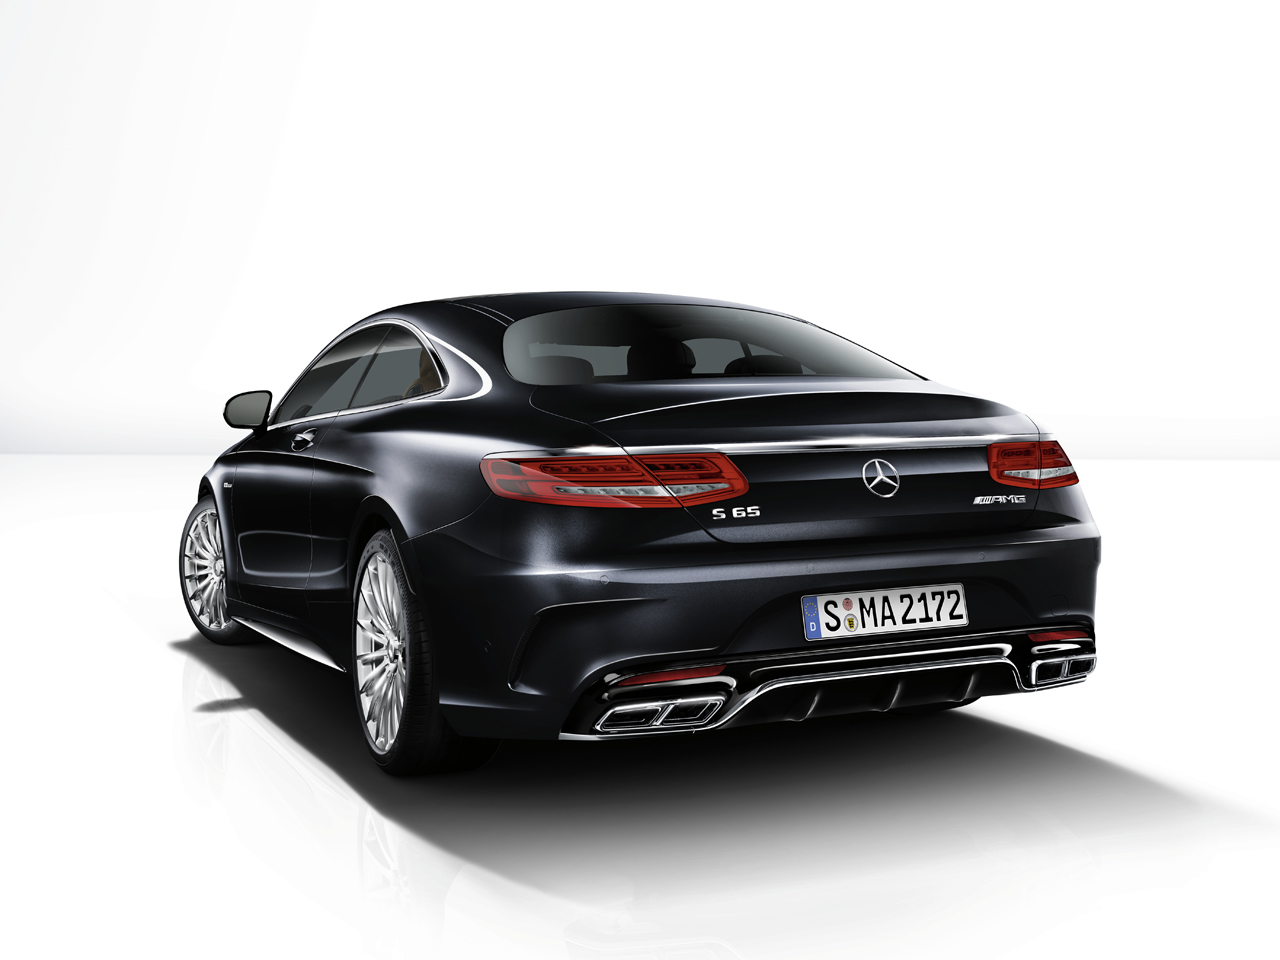 2015 mercedes benz s65 amg coupe introduced with turbo v12 for Mercedes benz v12 price